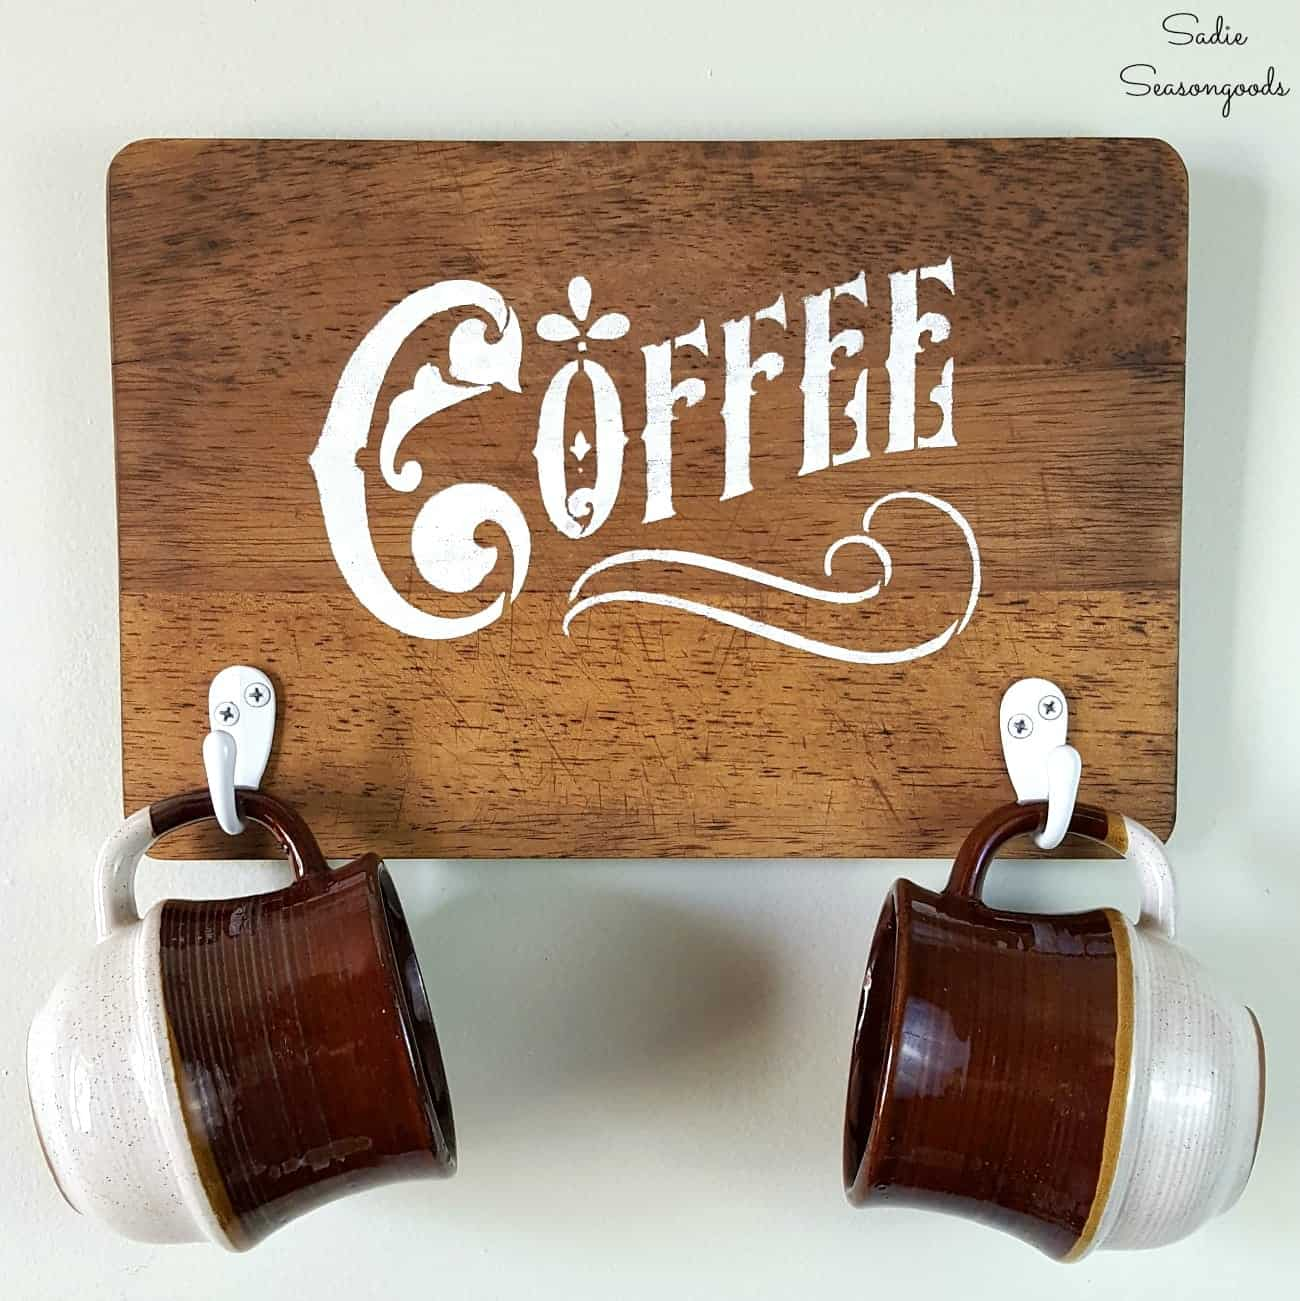 Wooden painted coffee mug sign